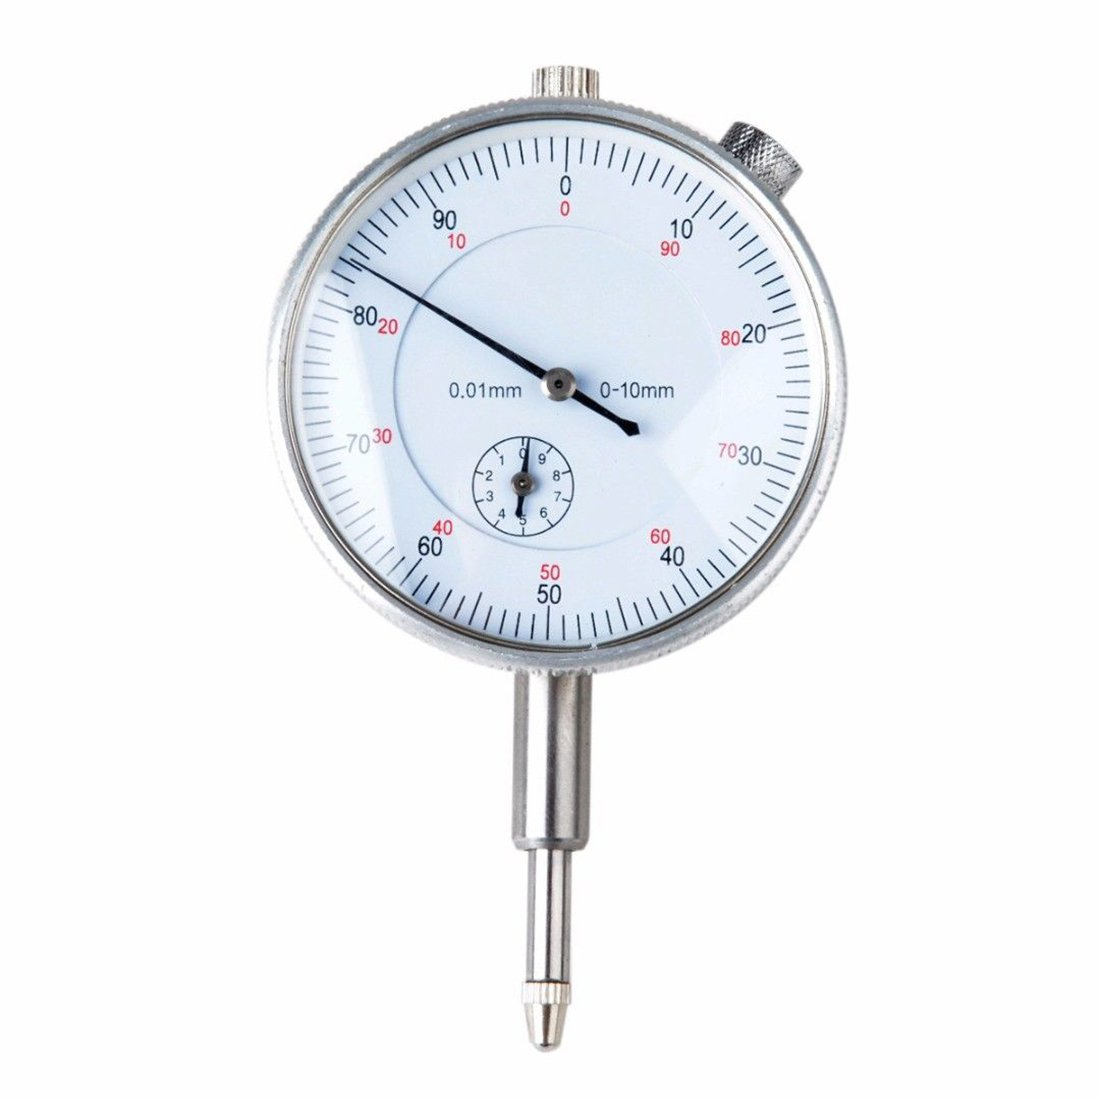 SODIAL Dial Gauge Indicator Precision Metric Accuracy Measurement Instrument 0.01mm